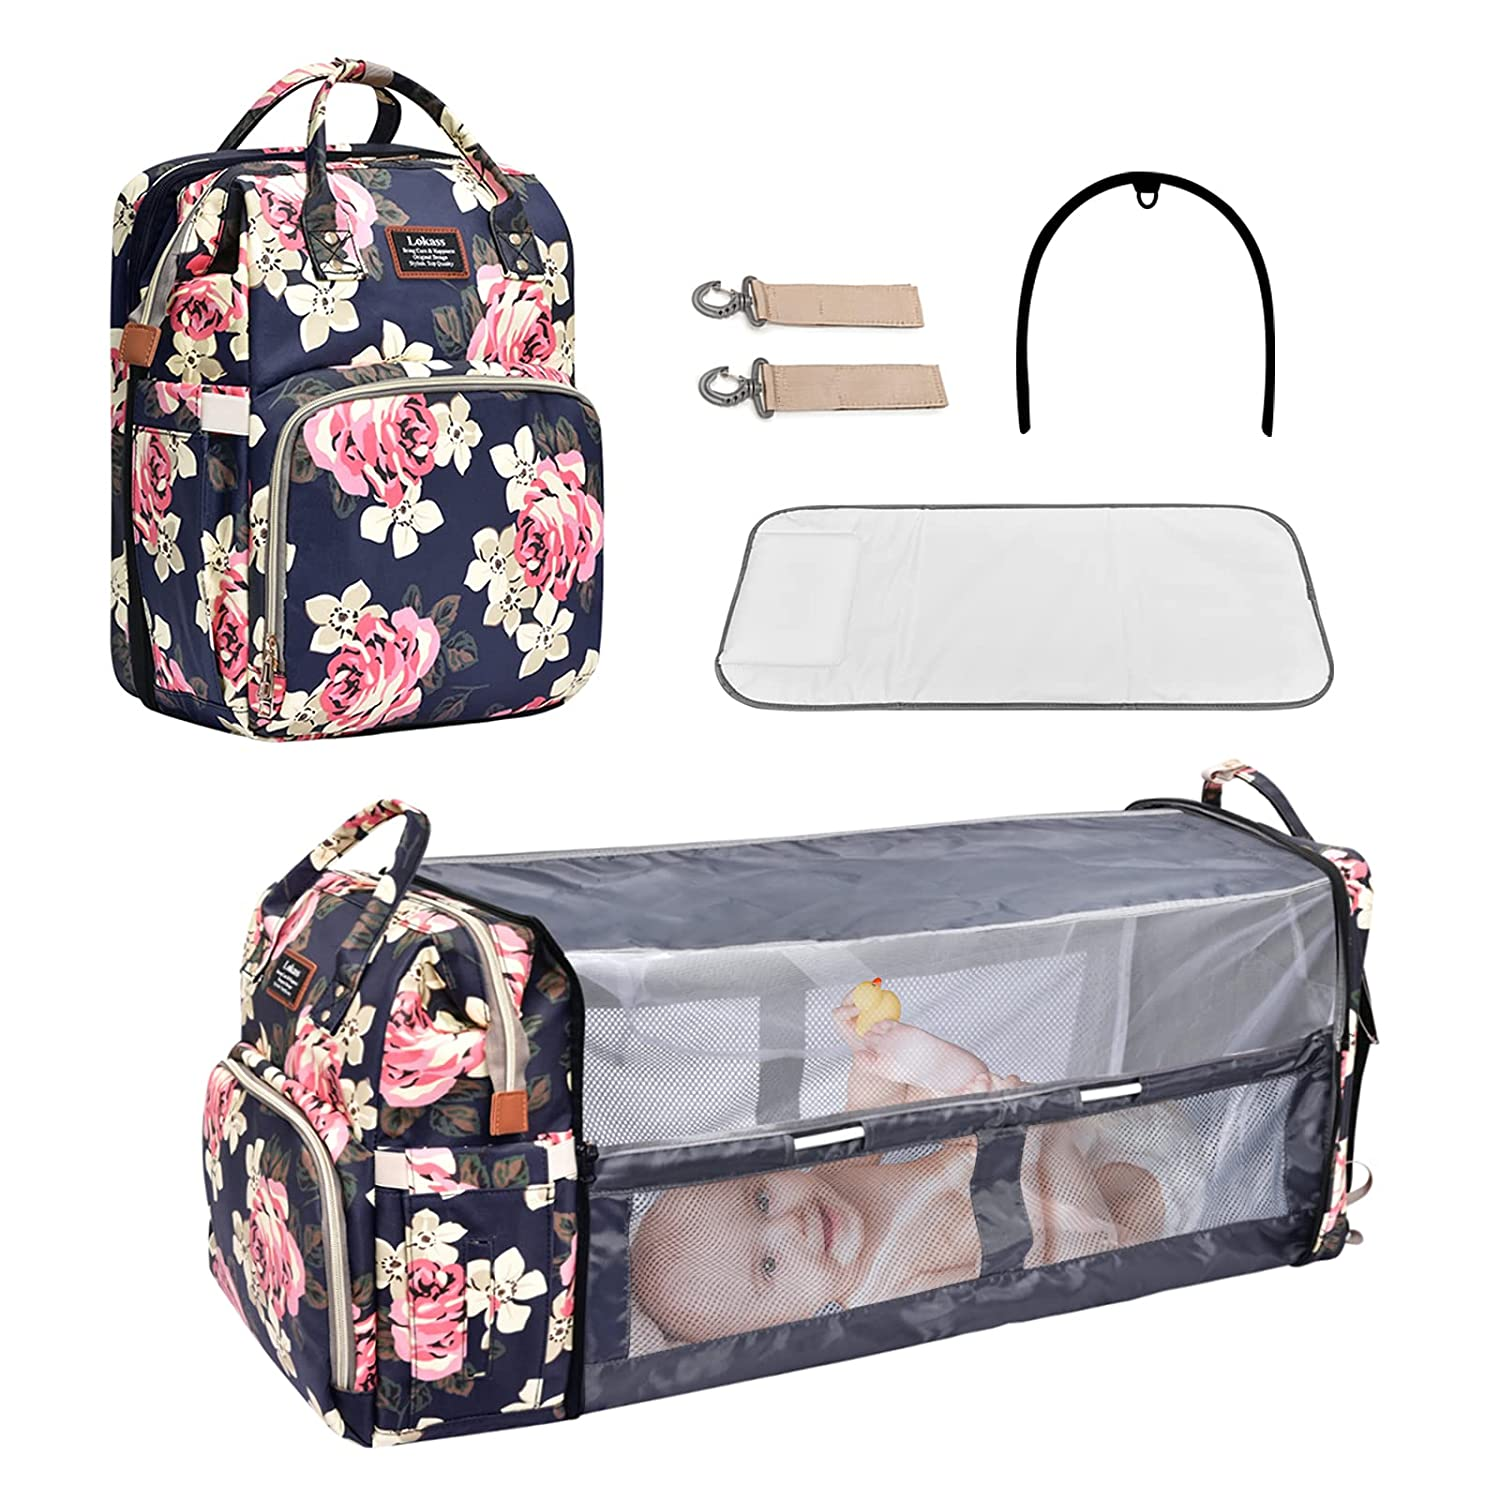 Baby Diaper Bag Backpack Diaper Bag with Changing Station Nappy Bag Backpack with Bassinet Multifunction Floral Travel Bag Backpack with Crib for Baby Girl Boy with Stroller Straps Insulation Pockets